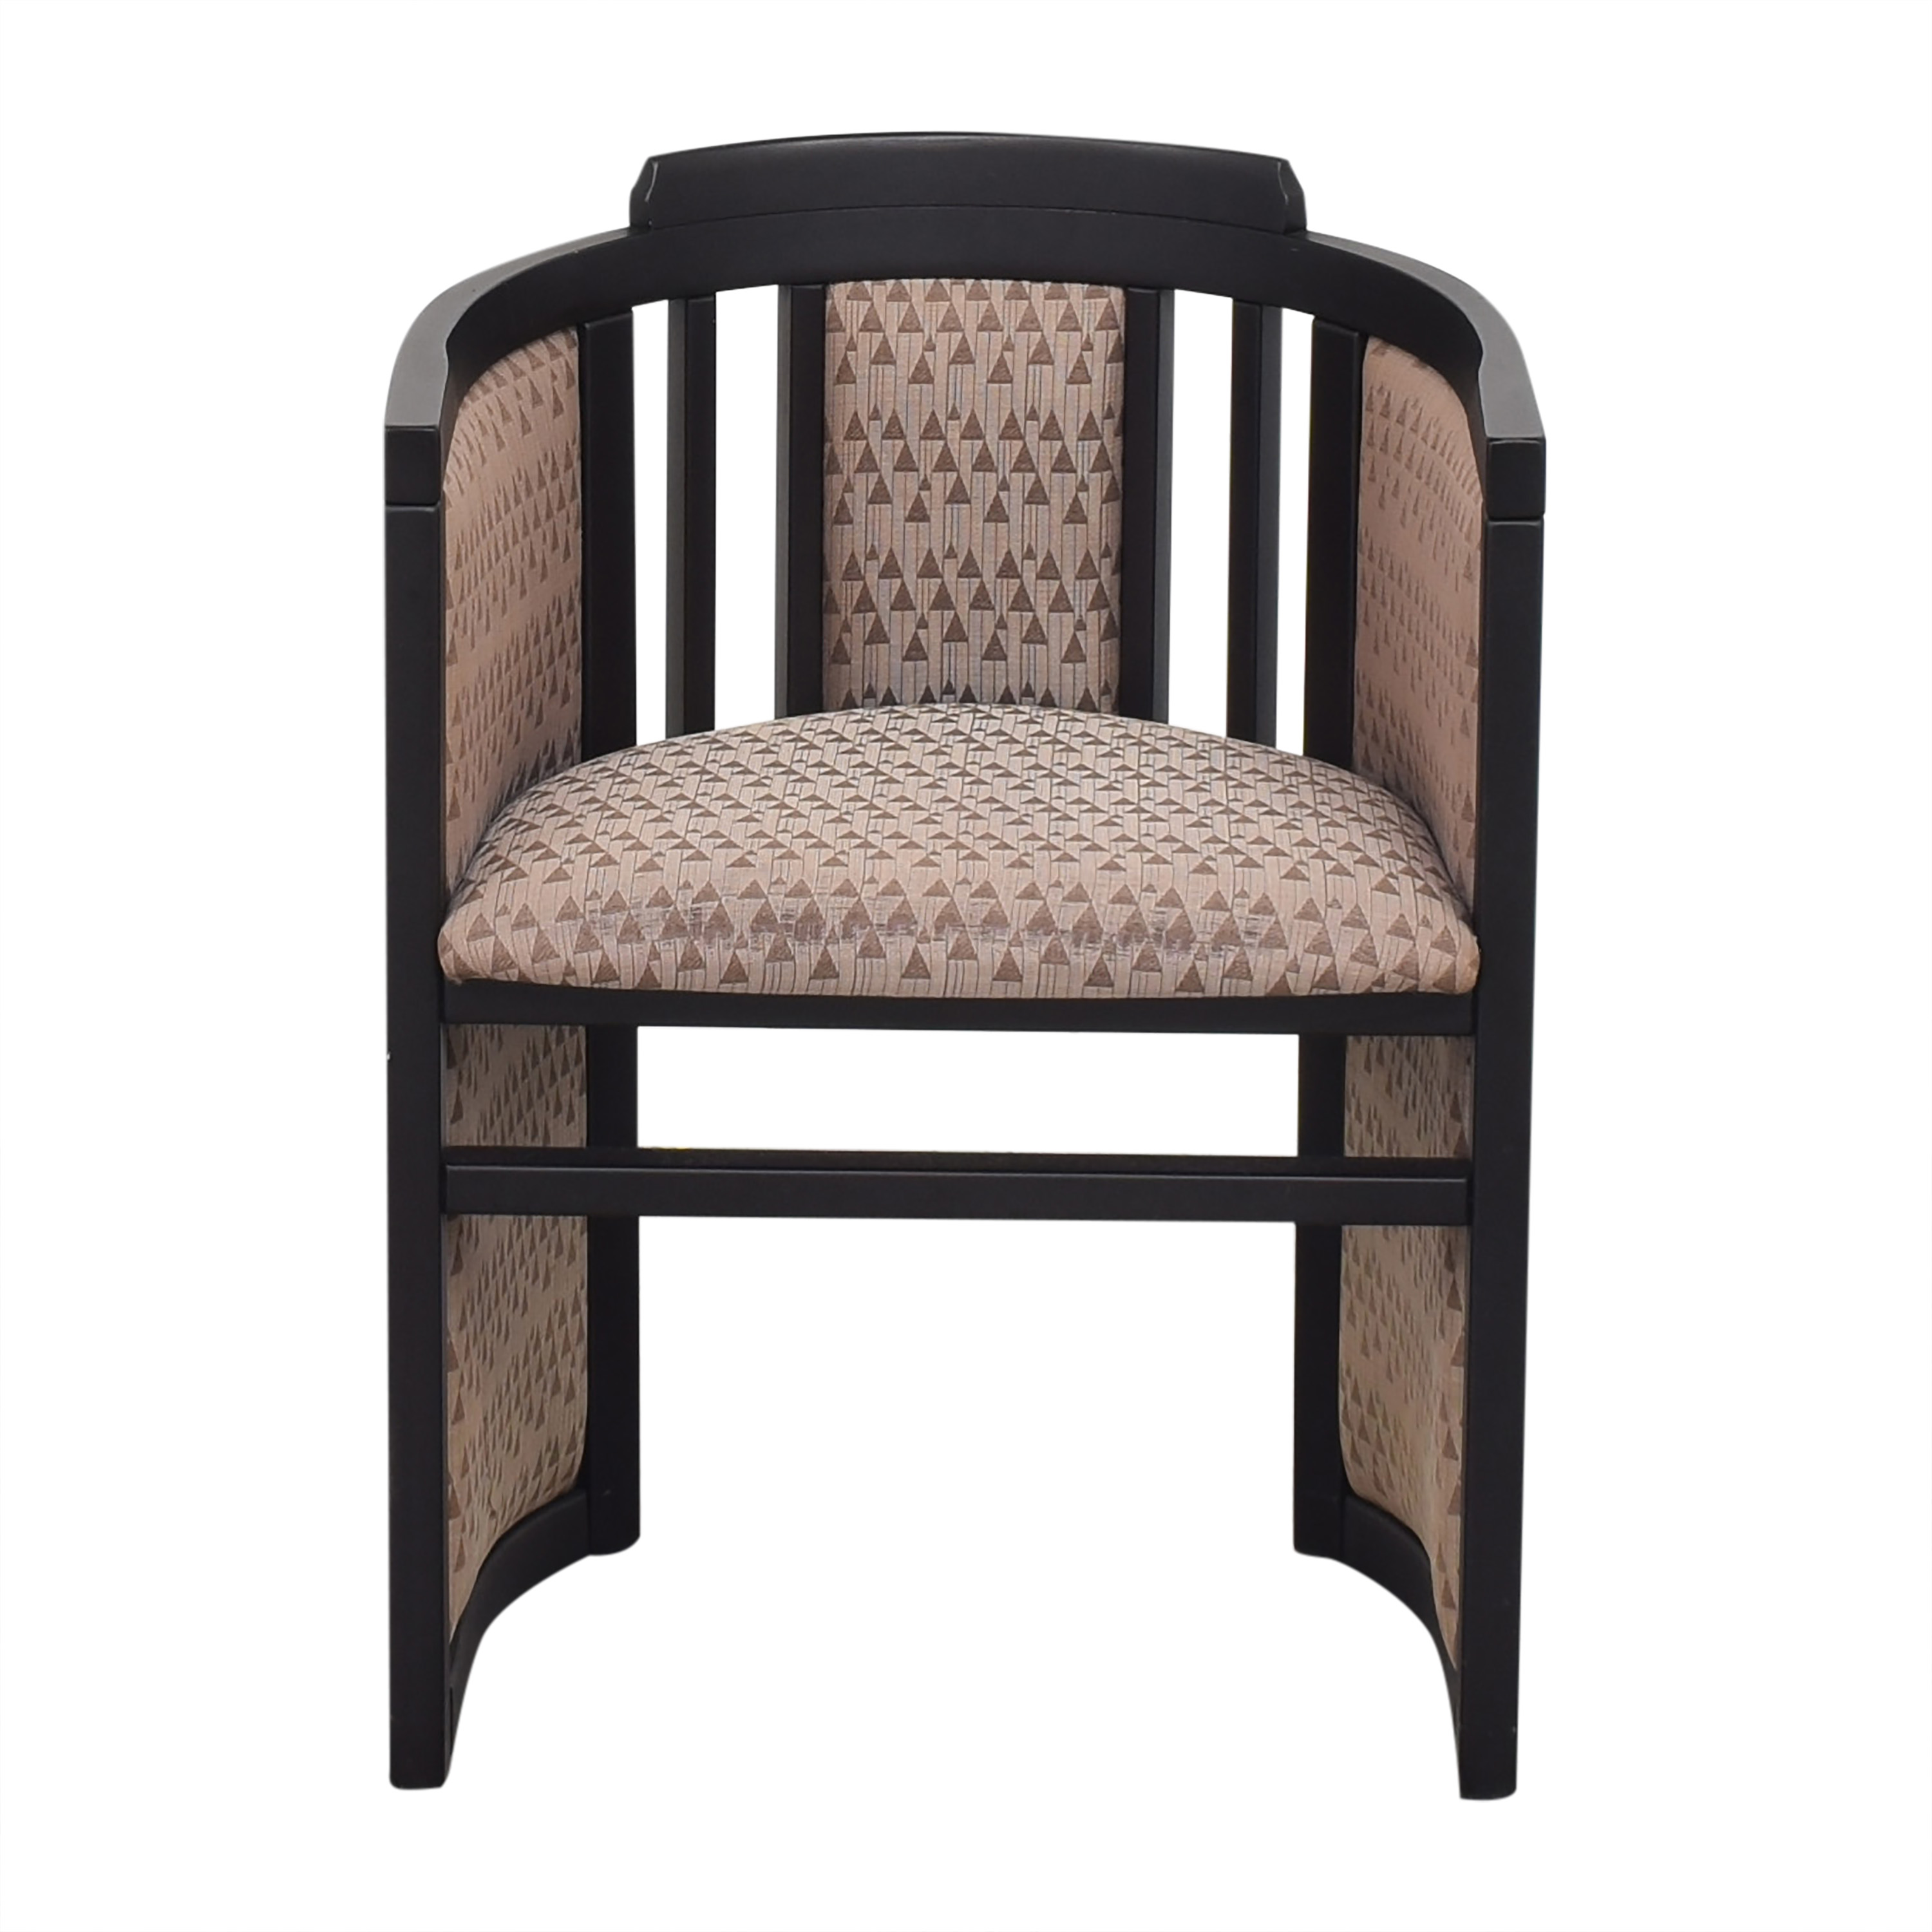 buy SA A. Sibau SA A. Sibau Accent Chair online